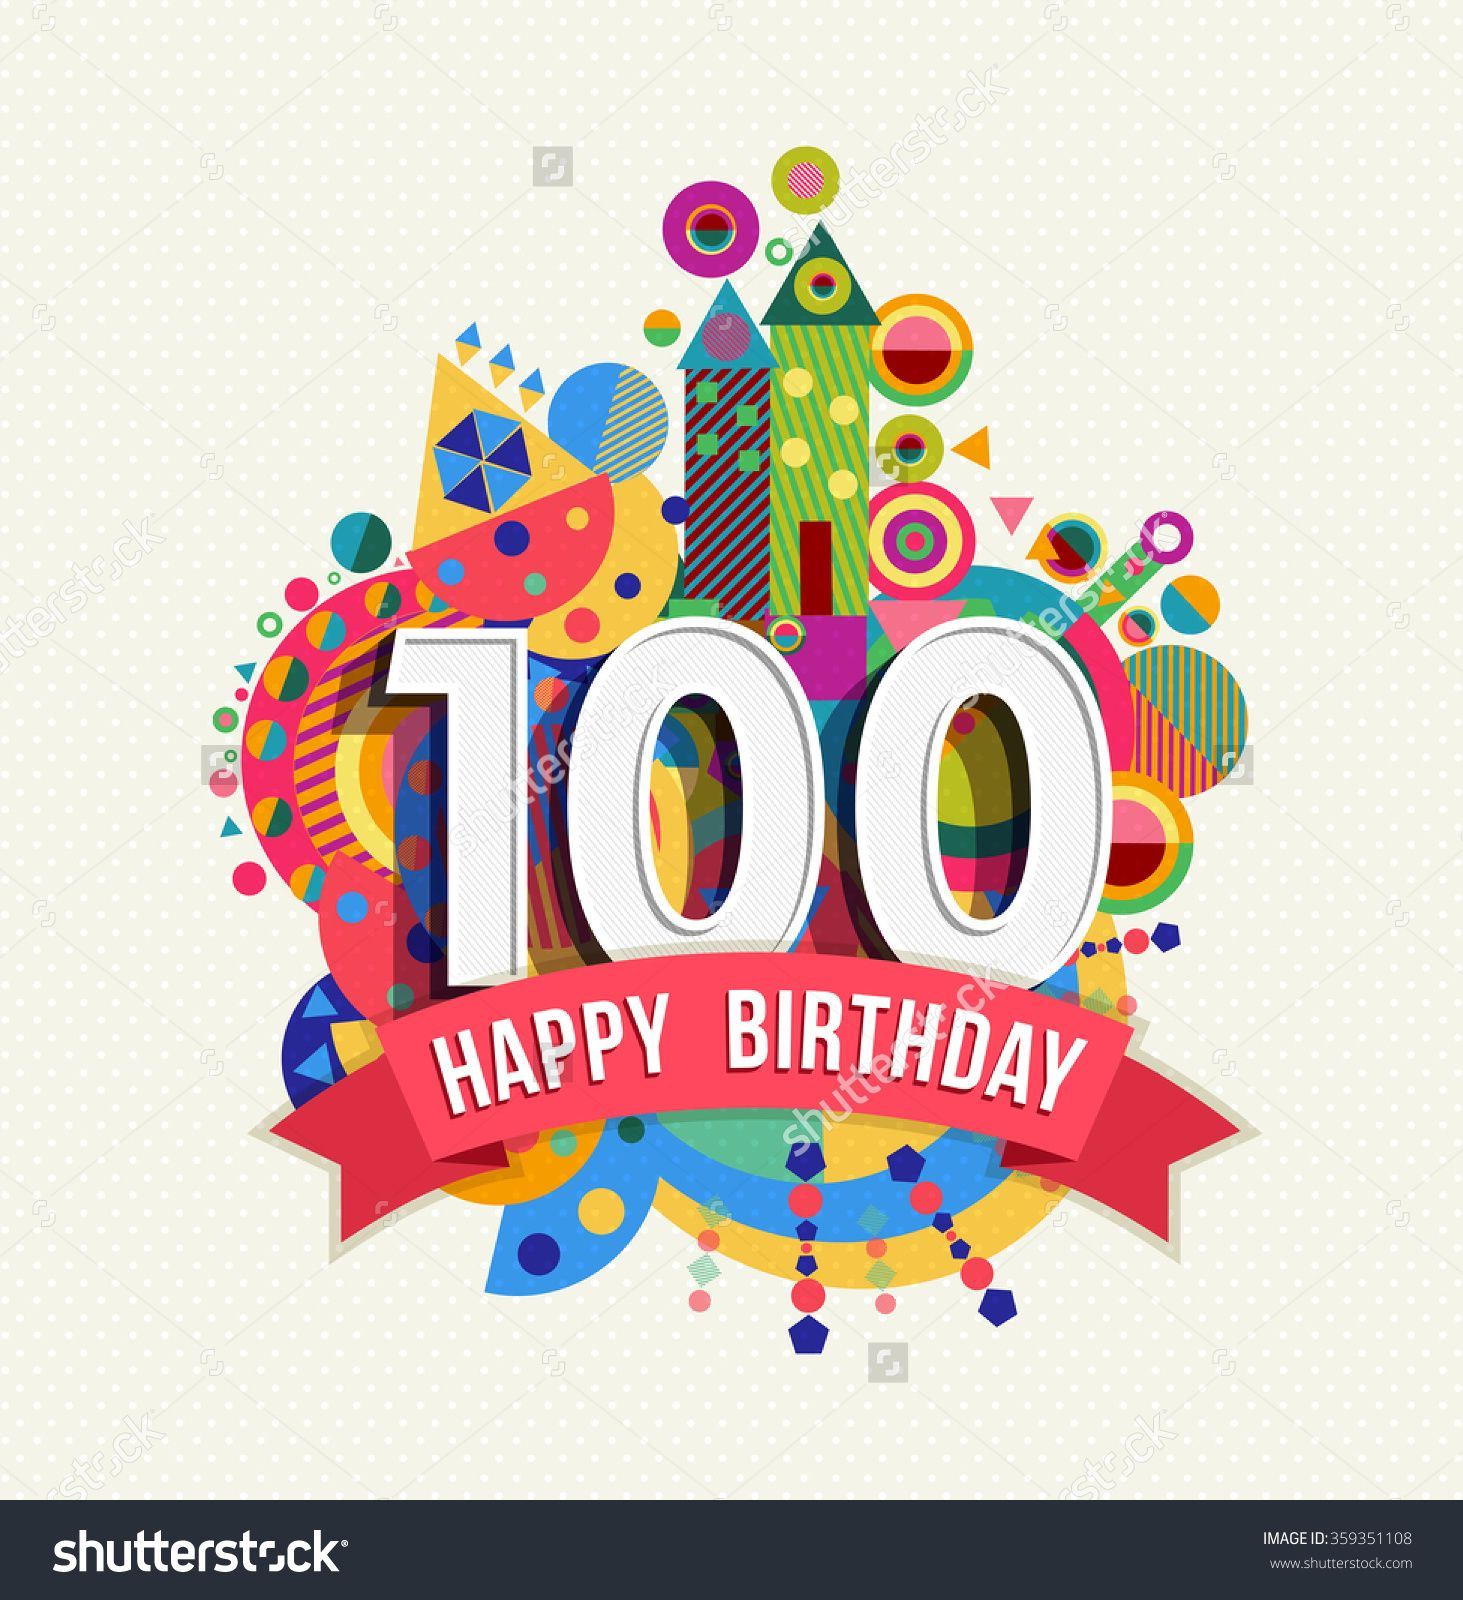 Image Result For Happy 100th Birthday Cards Old Birthday Cards Birthday Card Messages Birthday Cards For Her